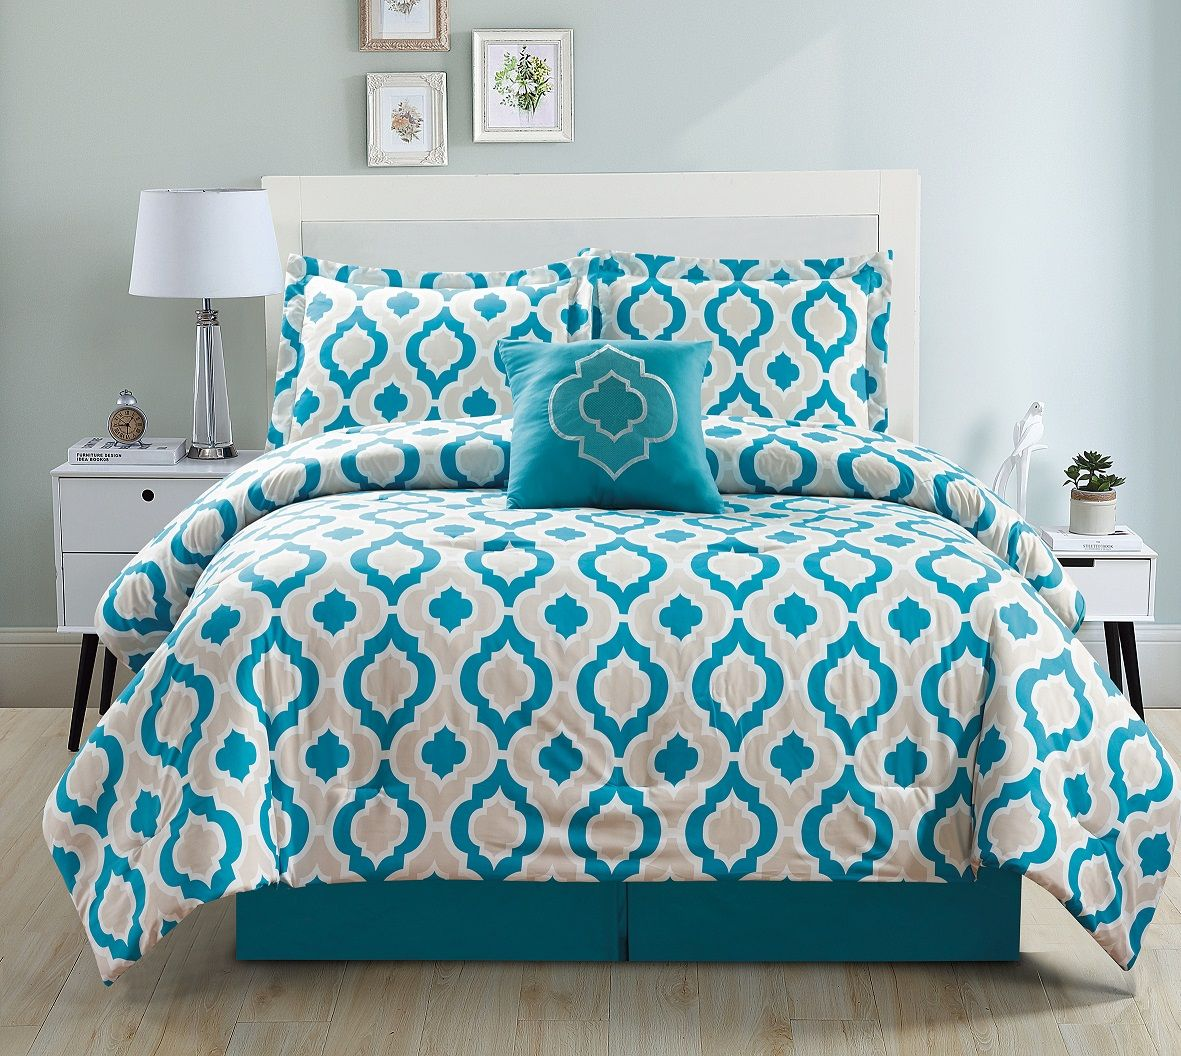 comforter mi queen set teal home amazon com dp kitchen full zone chloe